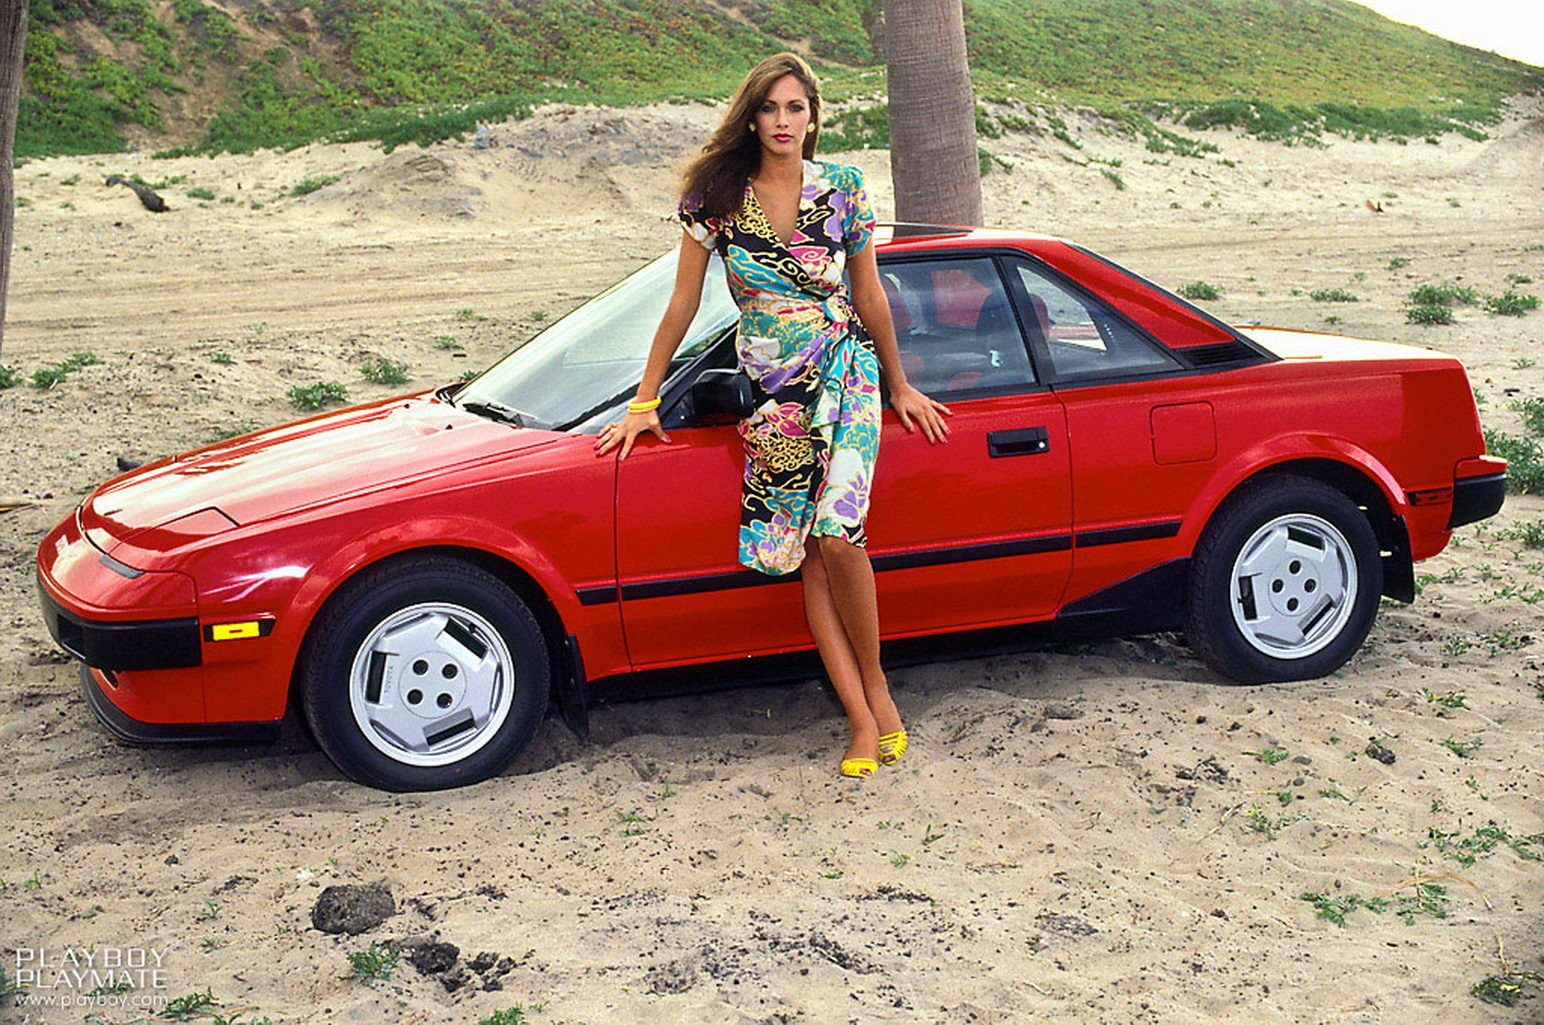 1985 Playboy Playmate Karen Velez With Toyota